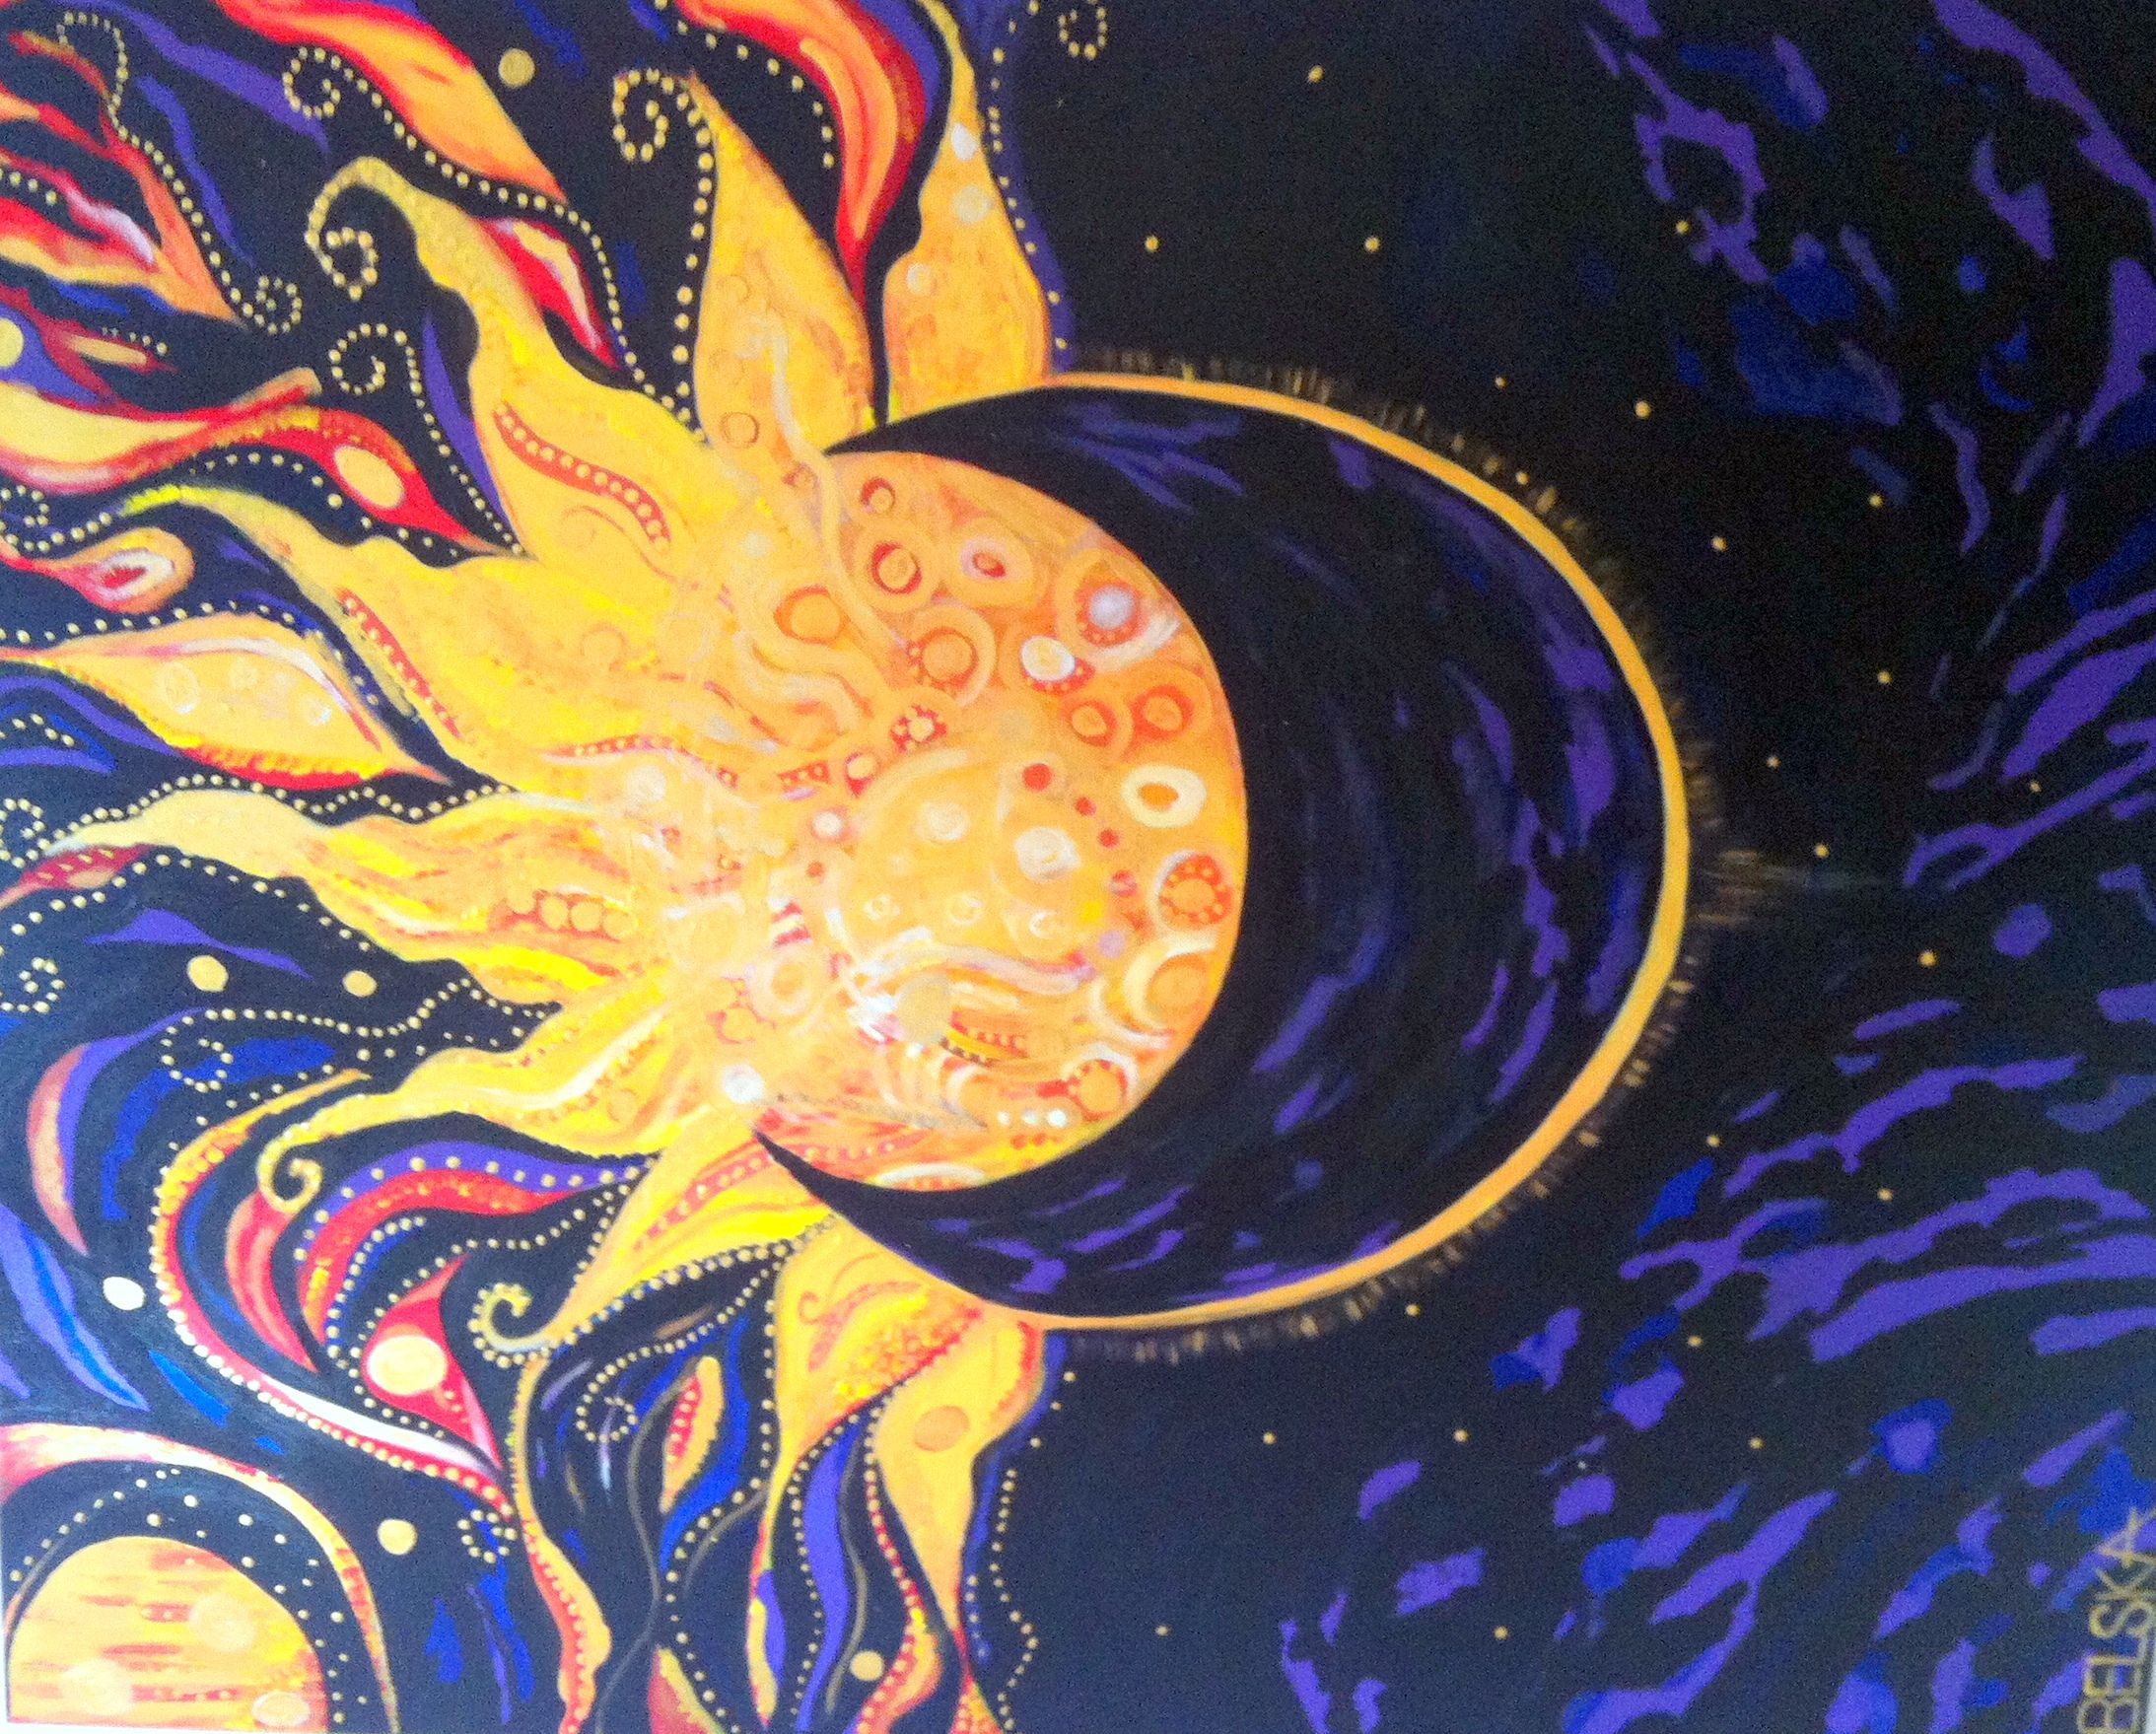 Pin by Reagan Miller on love it! | Sun painting, Eclipses art, Moon painting